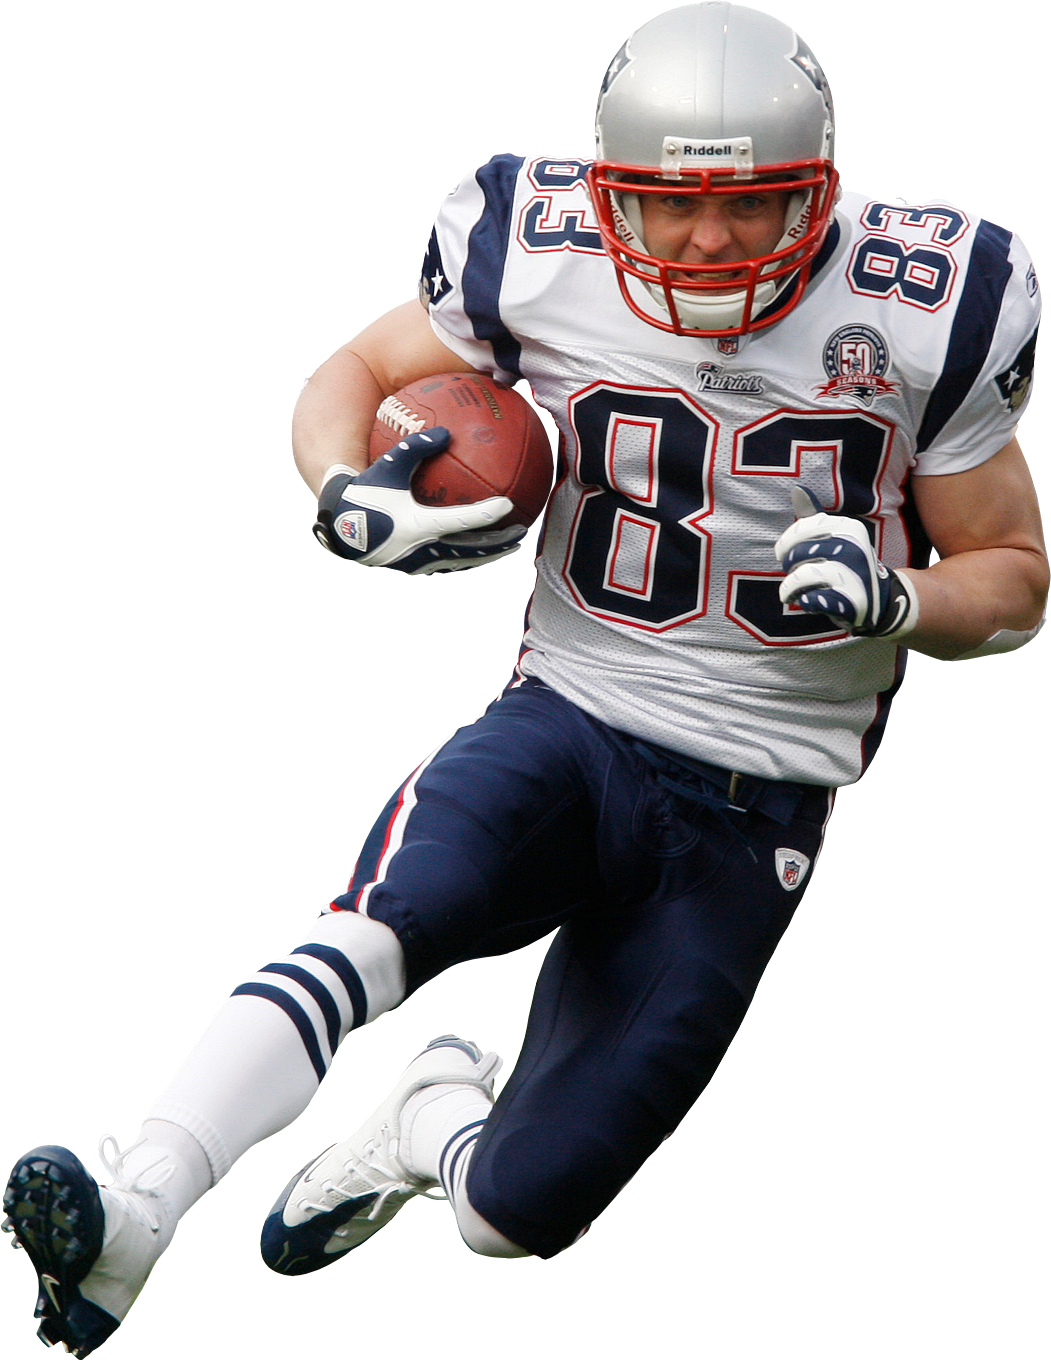 Wes Welker 83 New England Patriots Wide Receiver England Sports Football Is Life New England Patriots